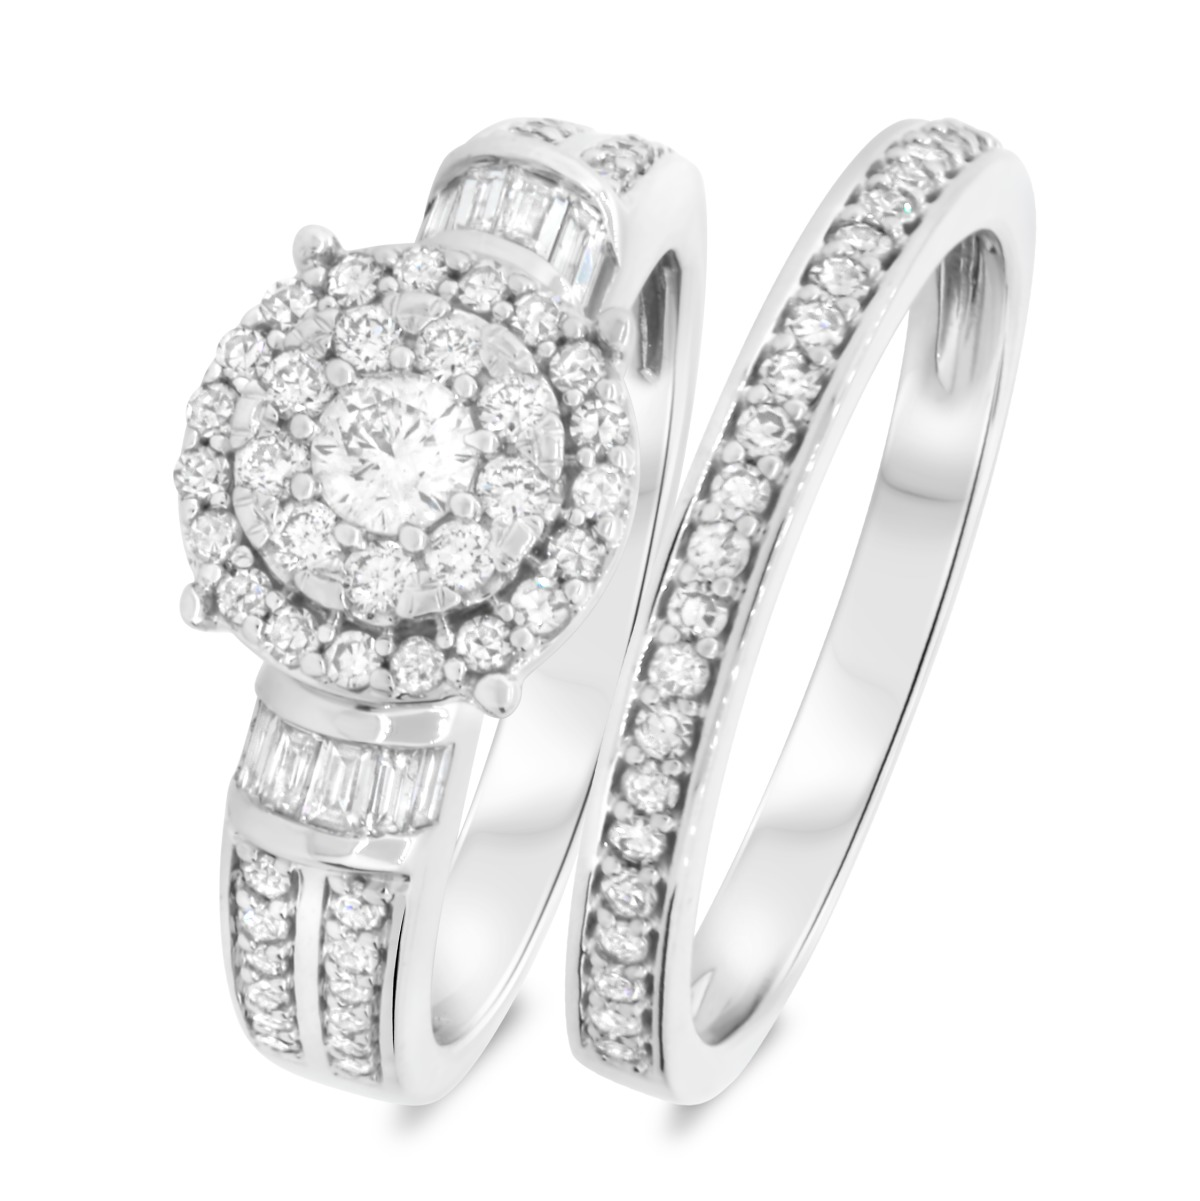 1 Carat T.W. Diamond Matching Bridal Ring Set 14K White Gold